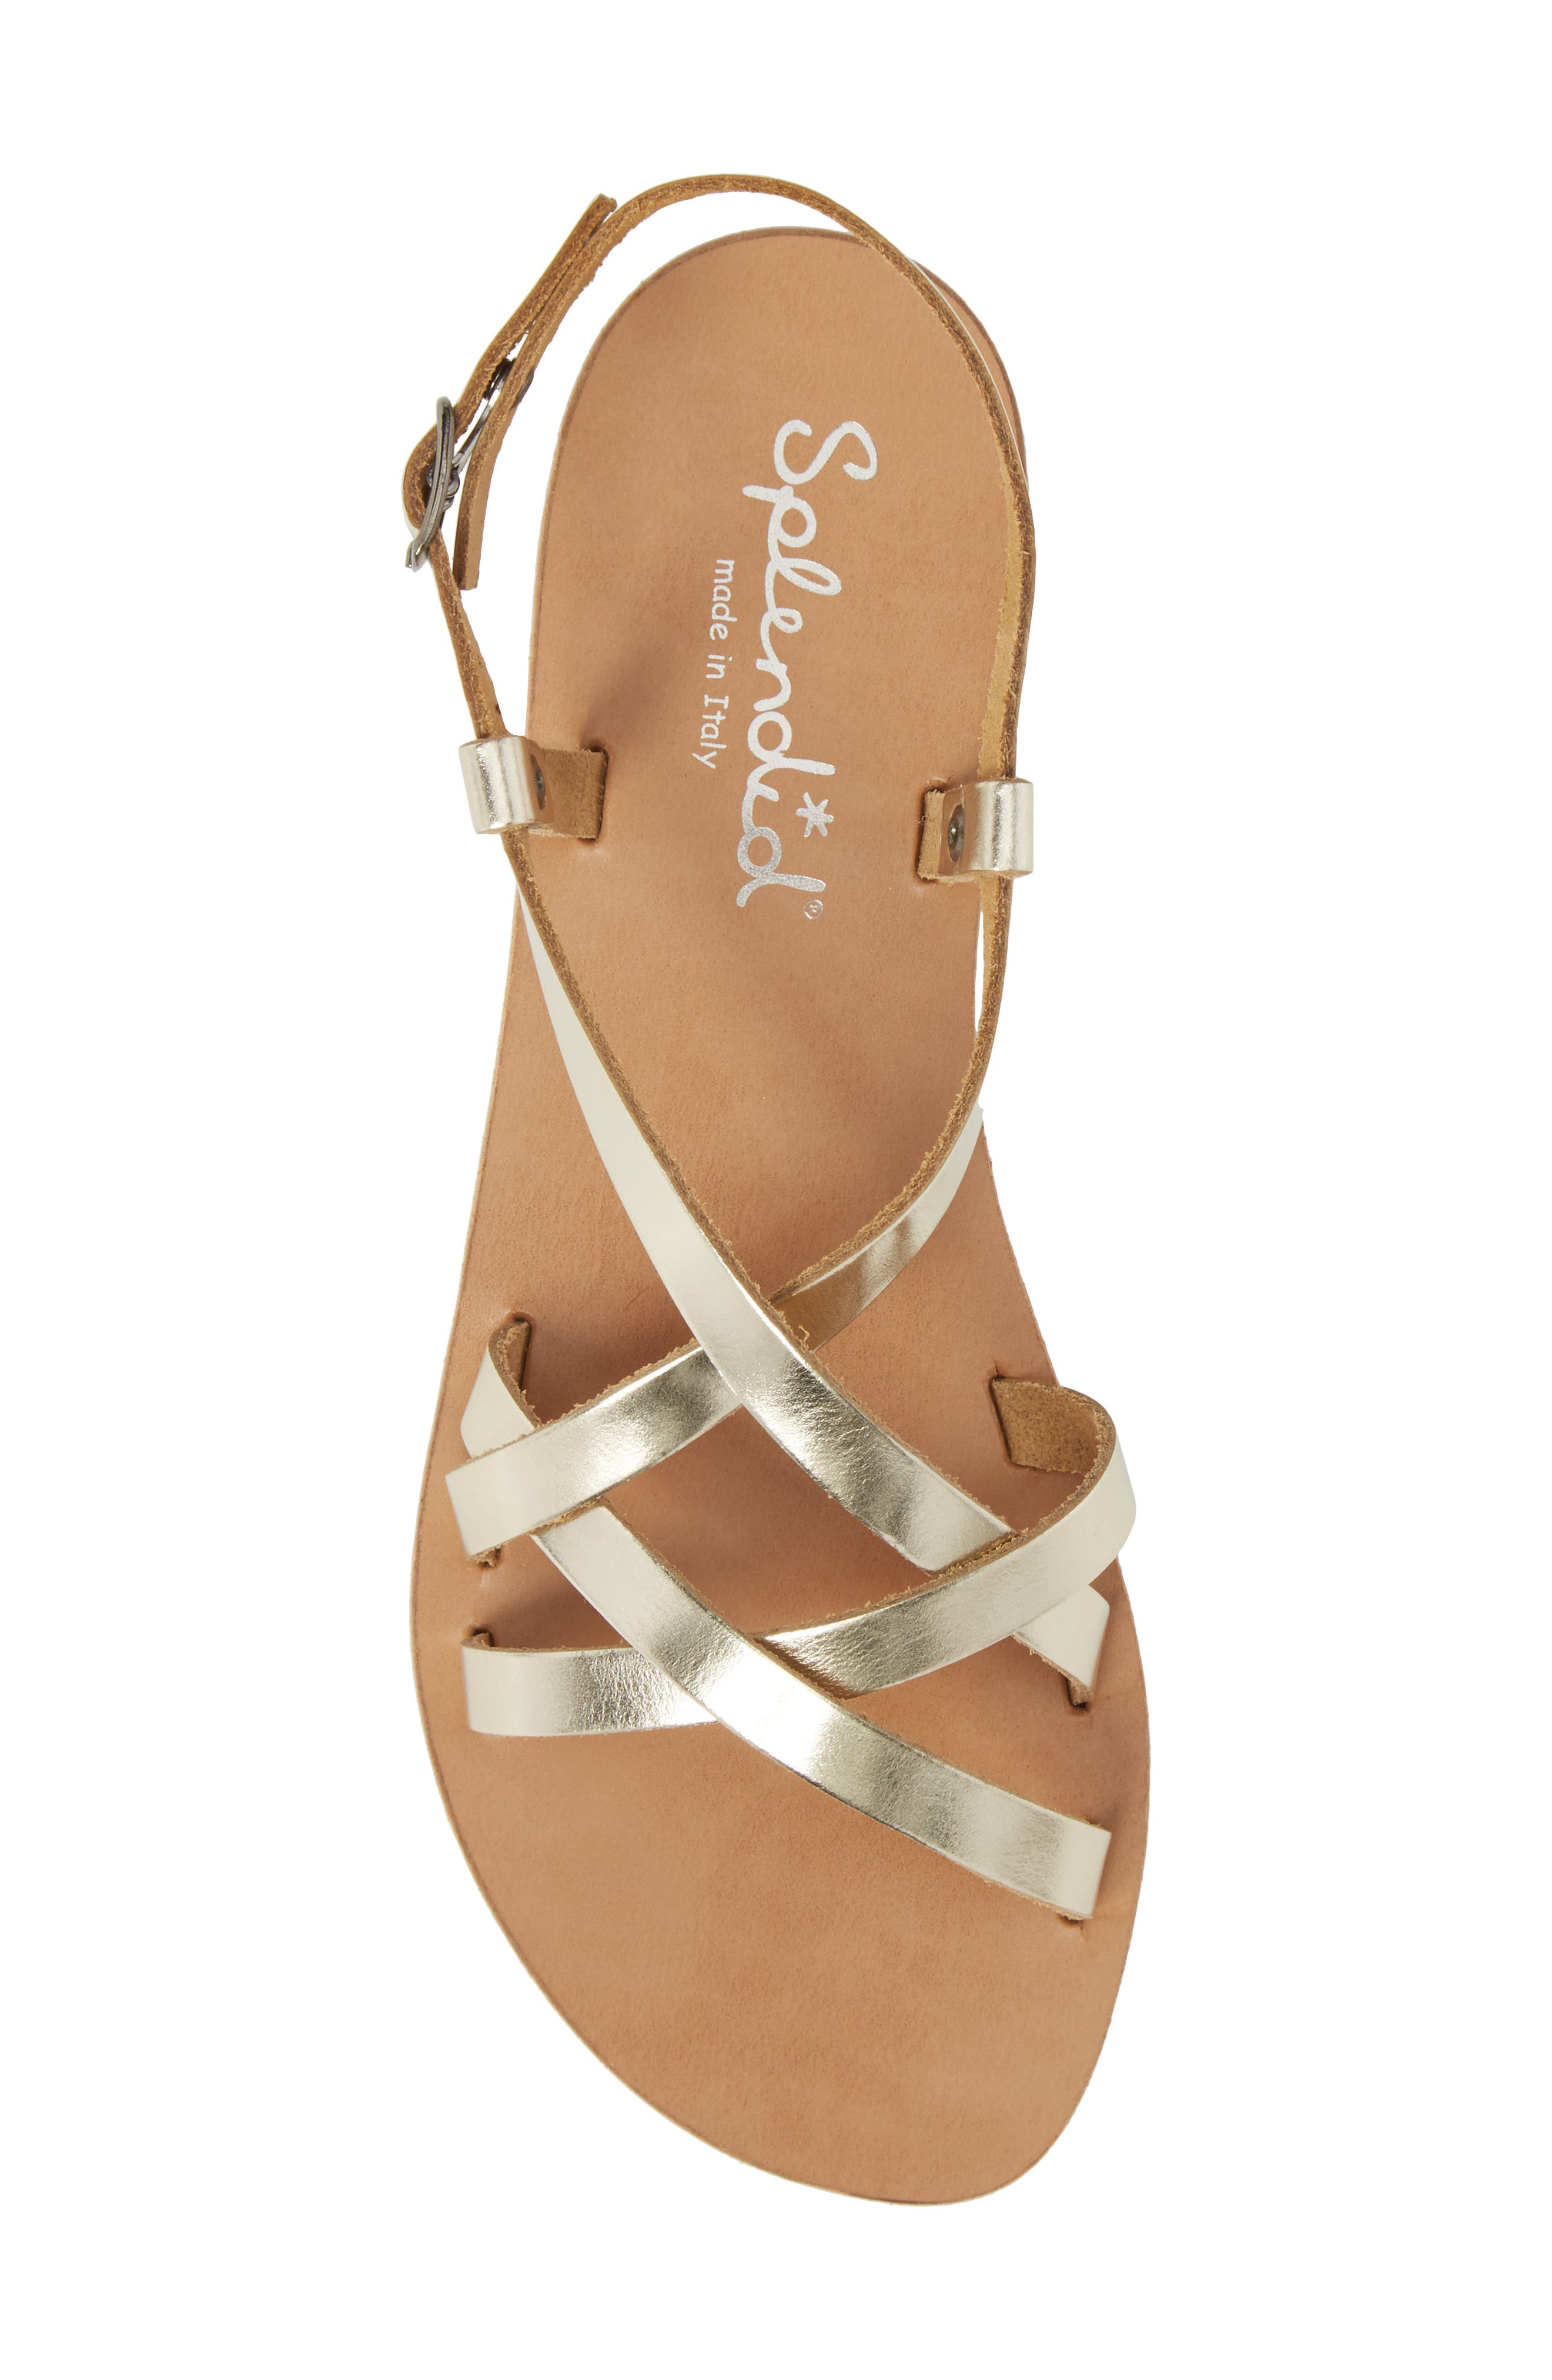 Bowen Sandal,                             Alternate thumbnail 5, color,                             Platino Leather